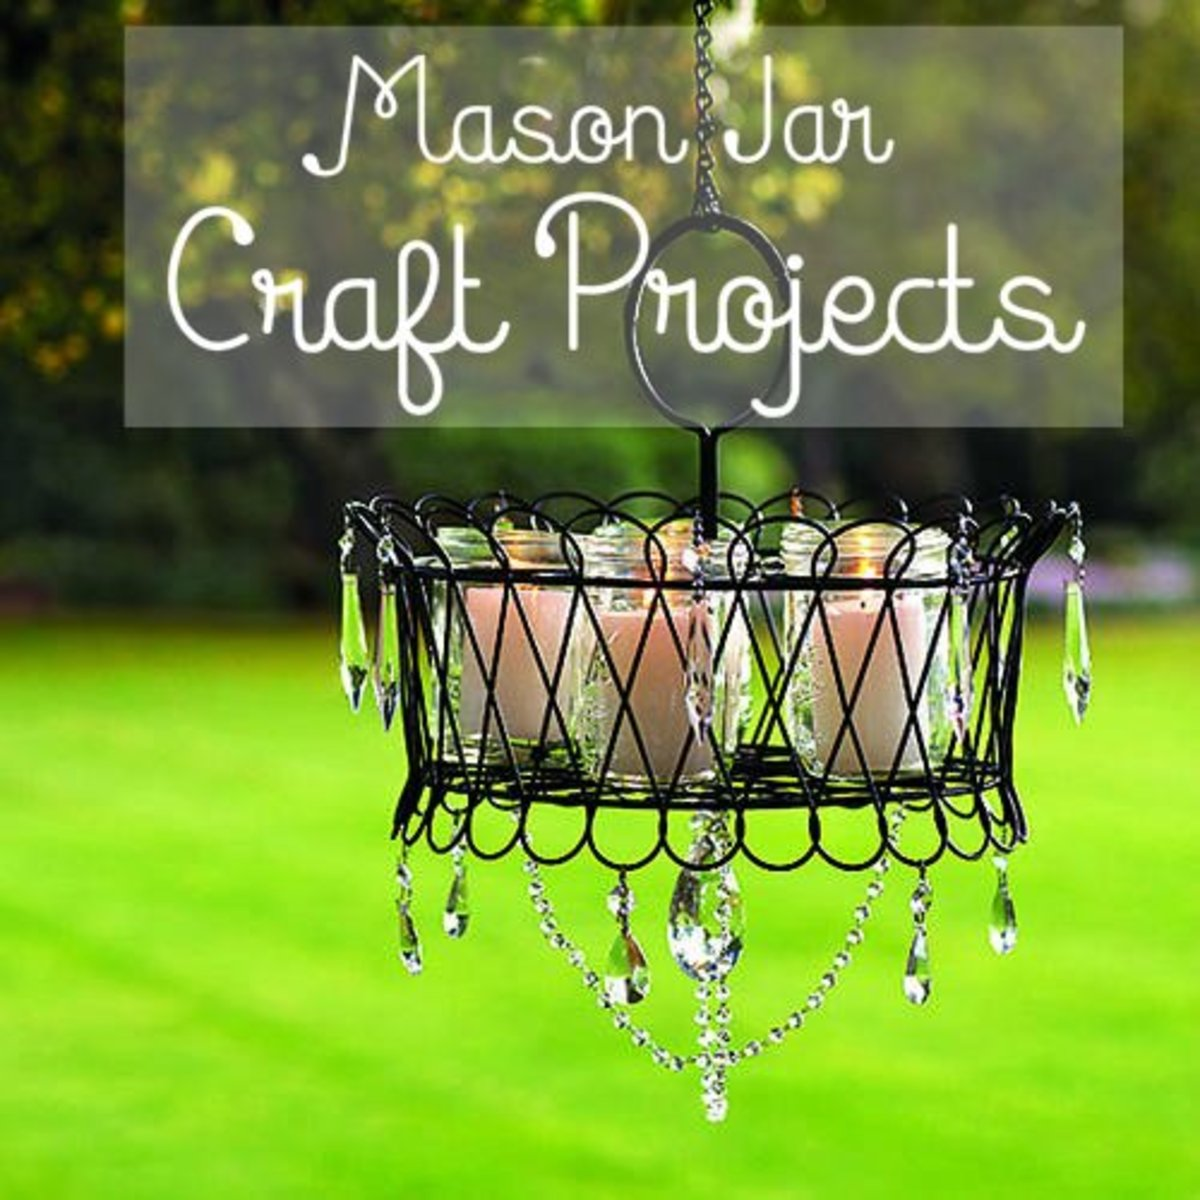 90 Outstanding Craft Projects Using Glass Jars